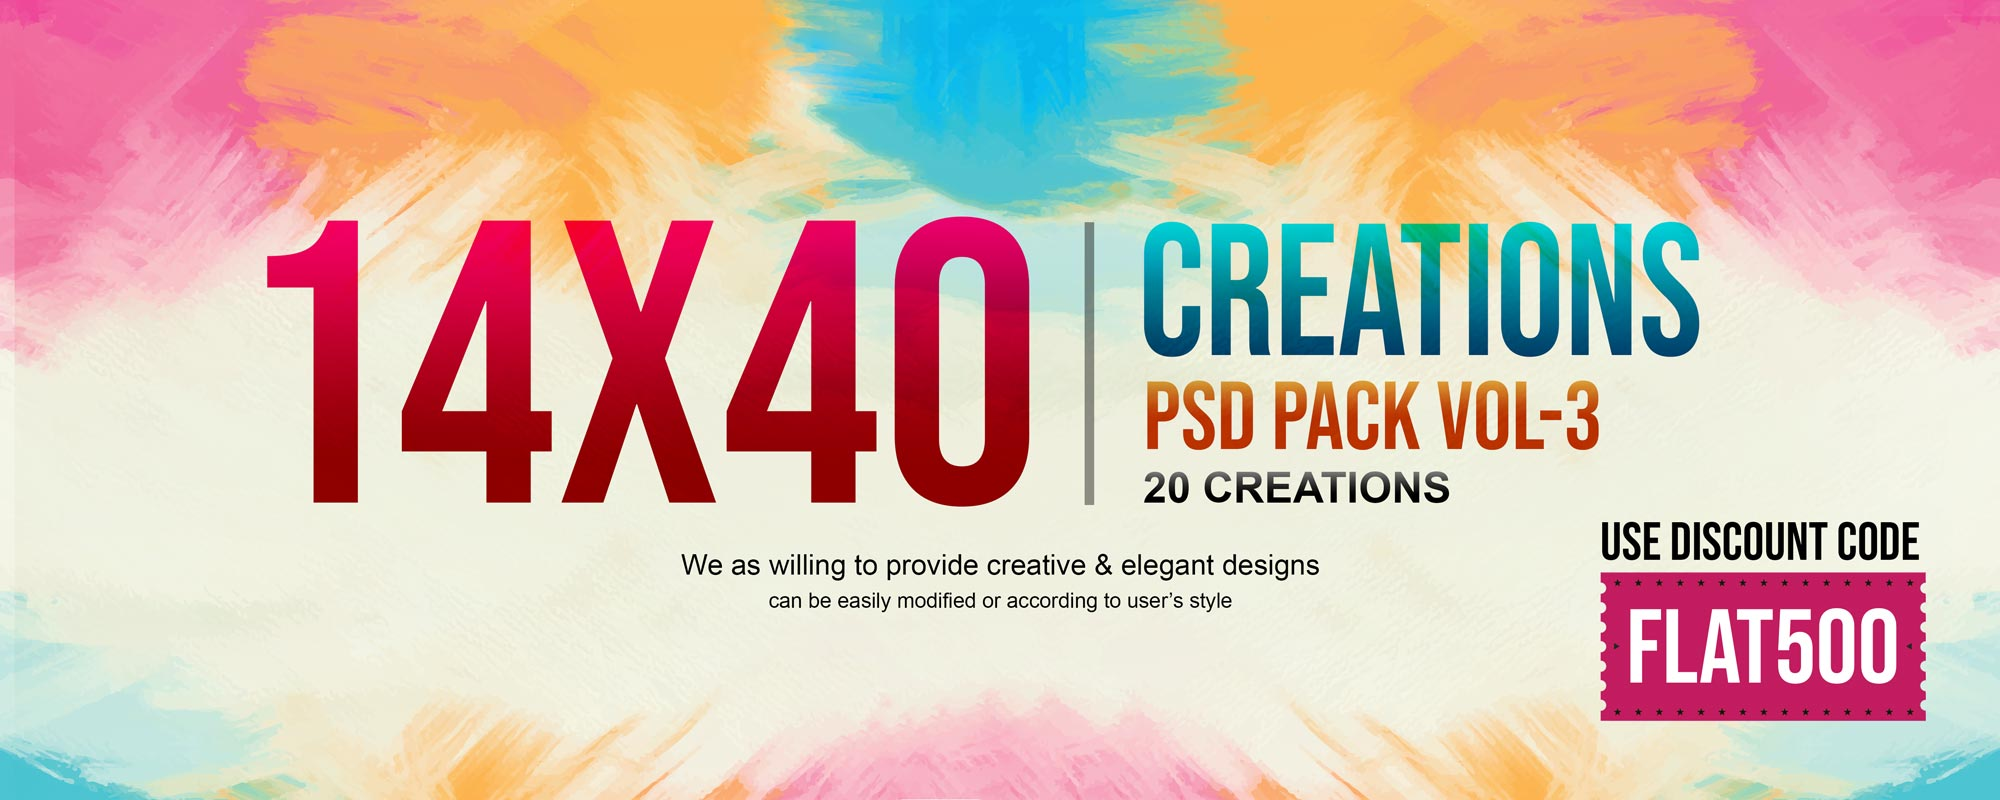 14×40 Creations Pack Vol-3